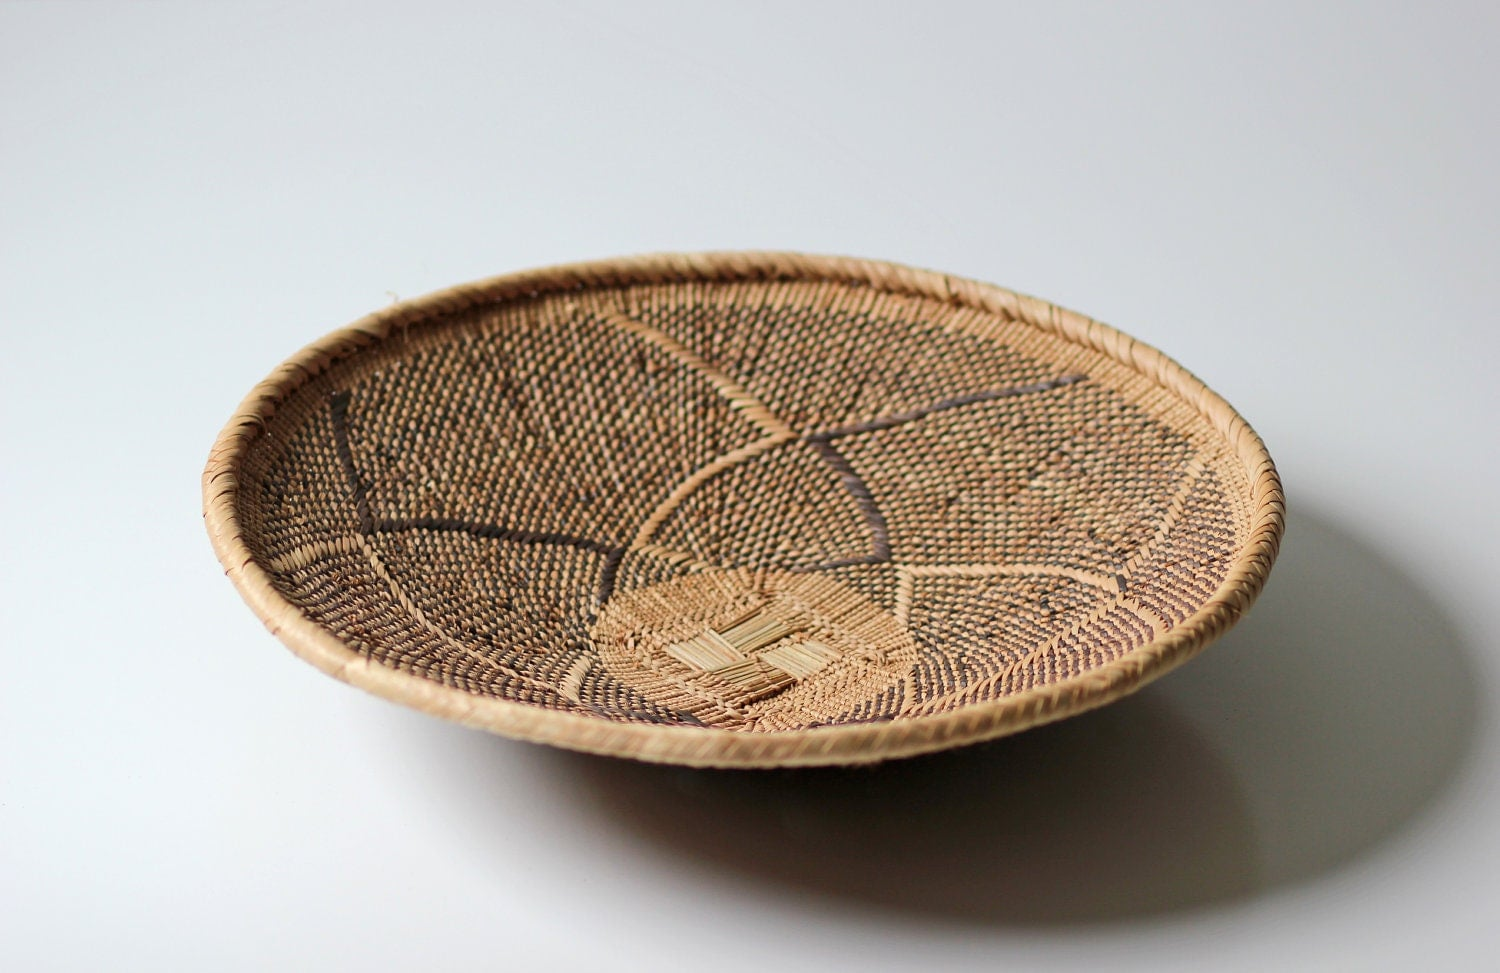 Round baskets wall decor : Round african woven basket tray wall decor by modishvintage